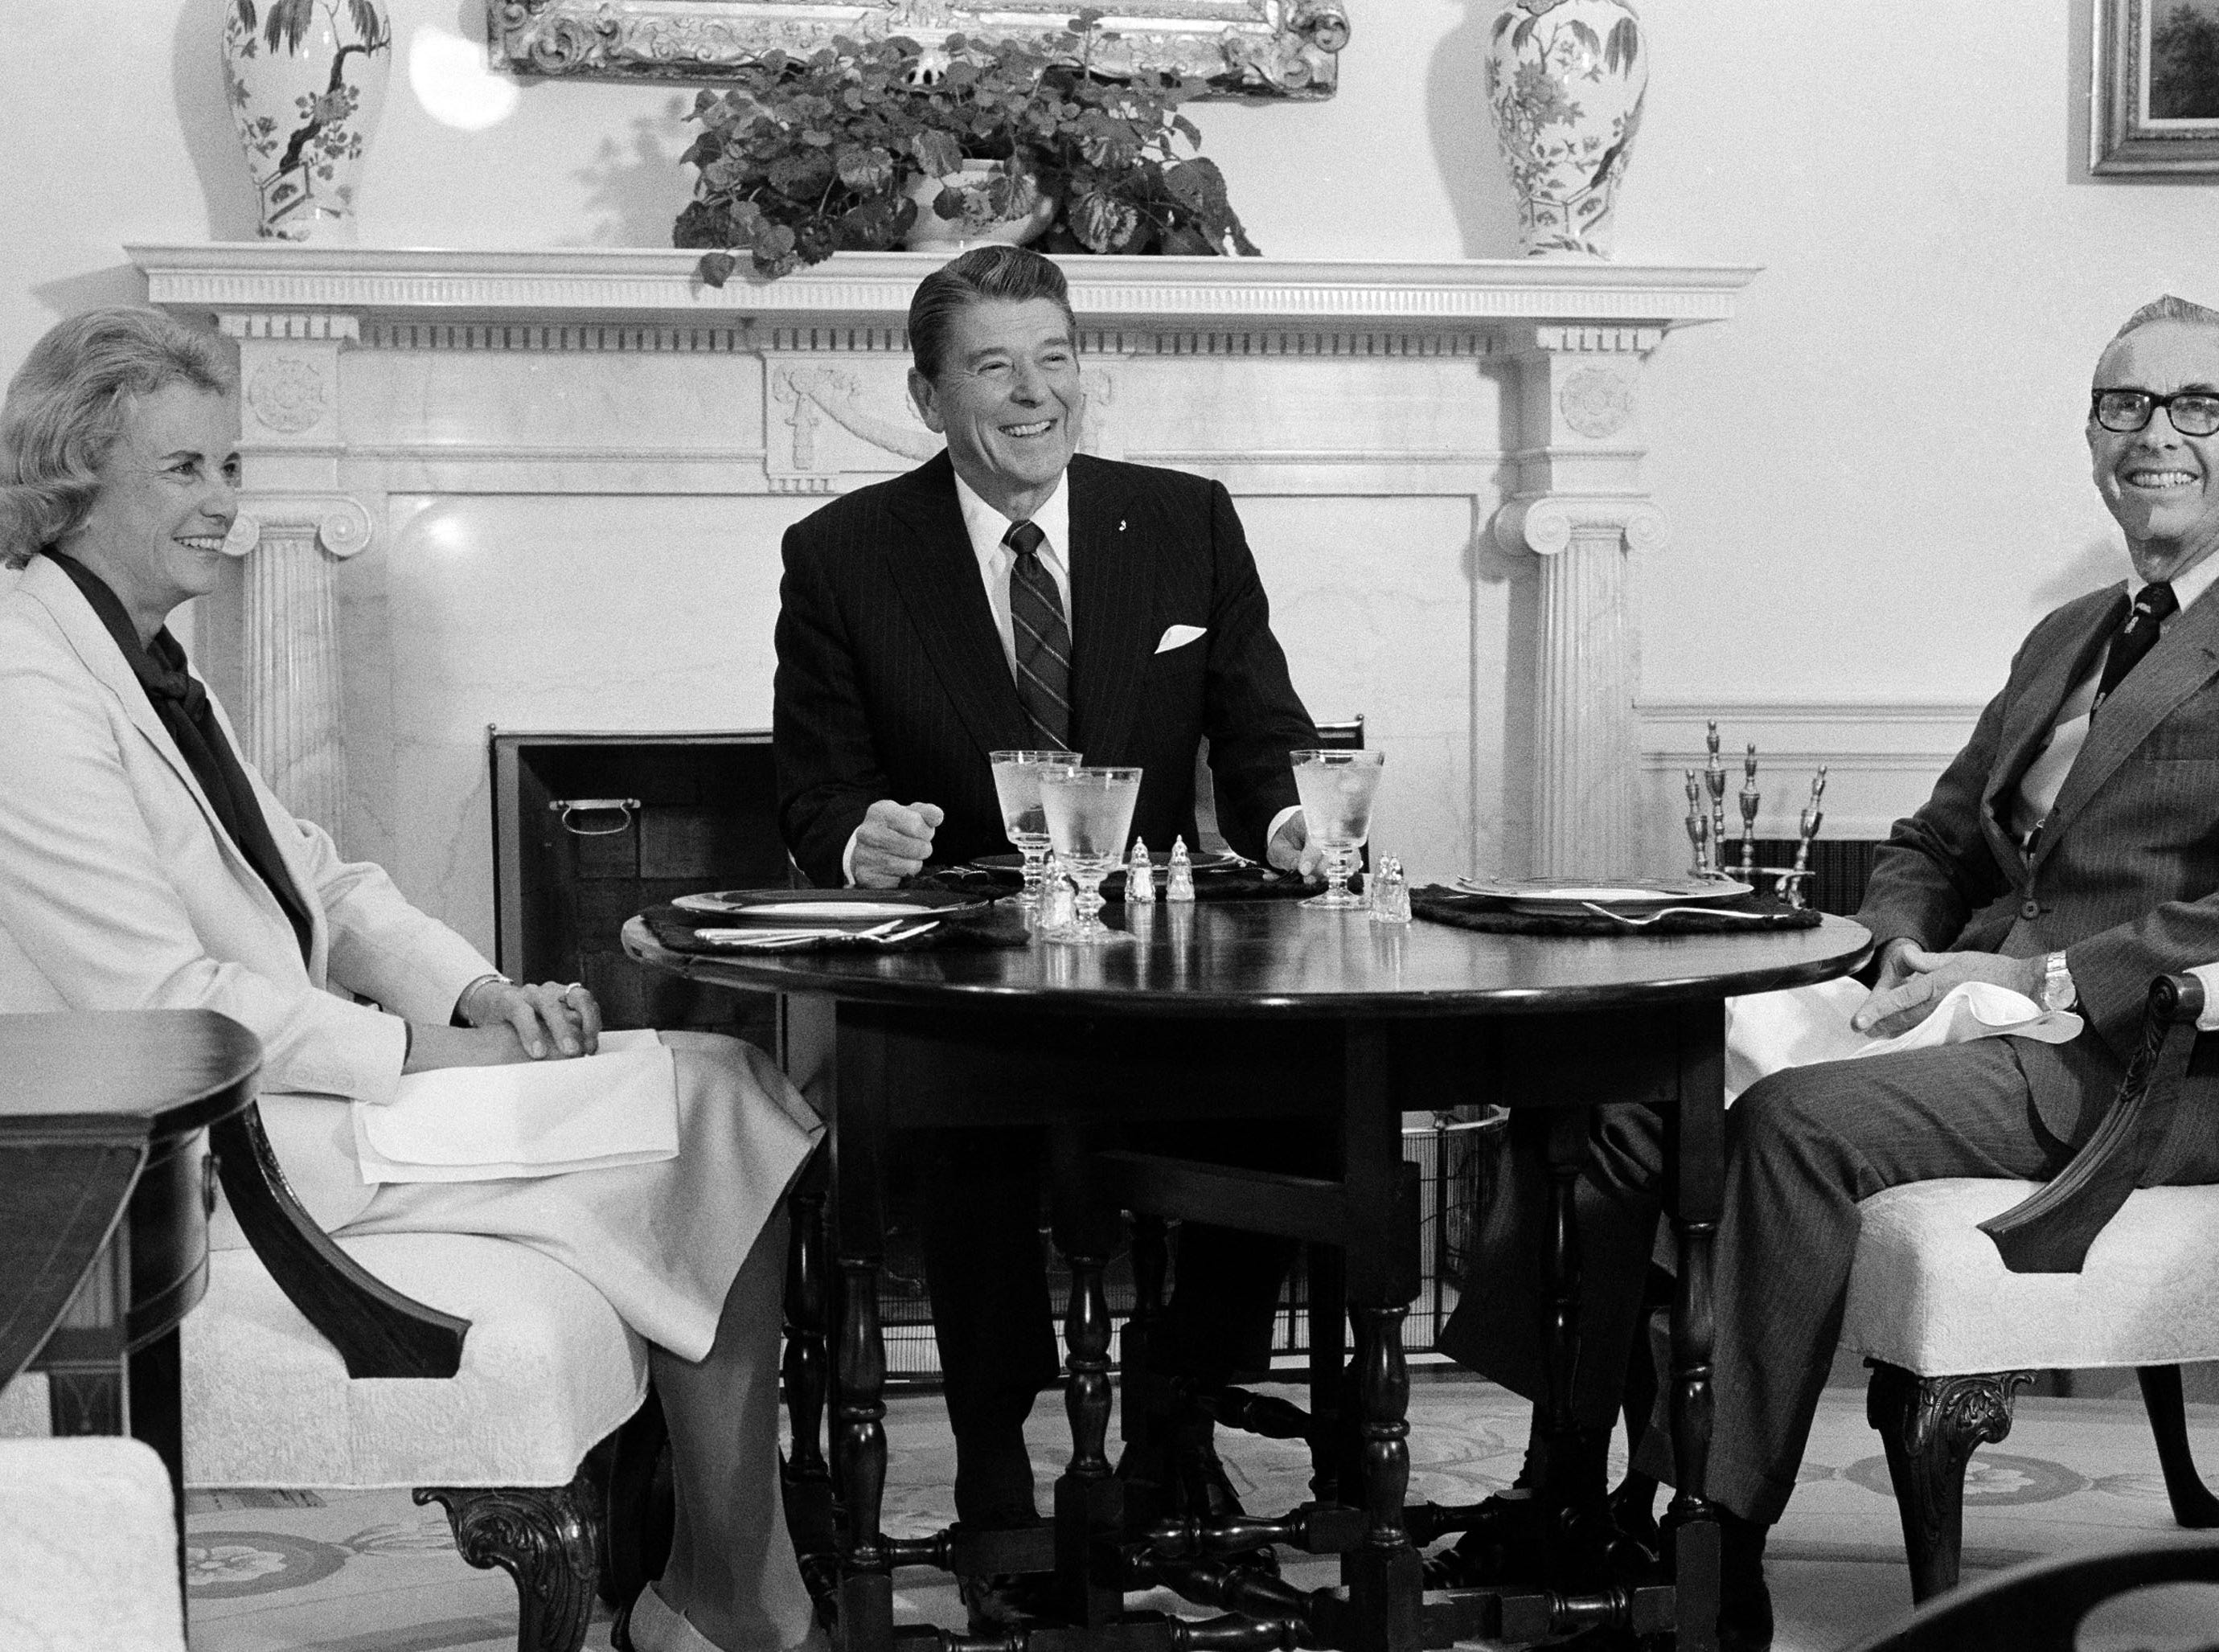 President Reagan poses with Supreme Court Justice Sandra Day O'Connor and her husband John J. O'Connor, right, in Oval Office, Sept. 23, 1983.  Justice O'Connor and her husband were guests of the president who was recognizing the second anniversary of her appointment to the Supreme Court.